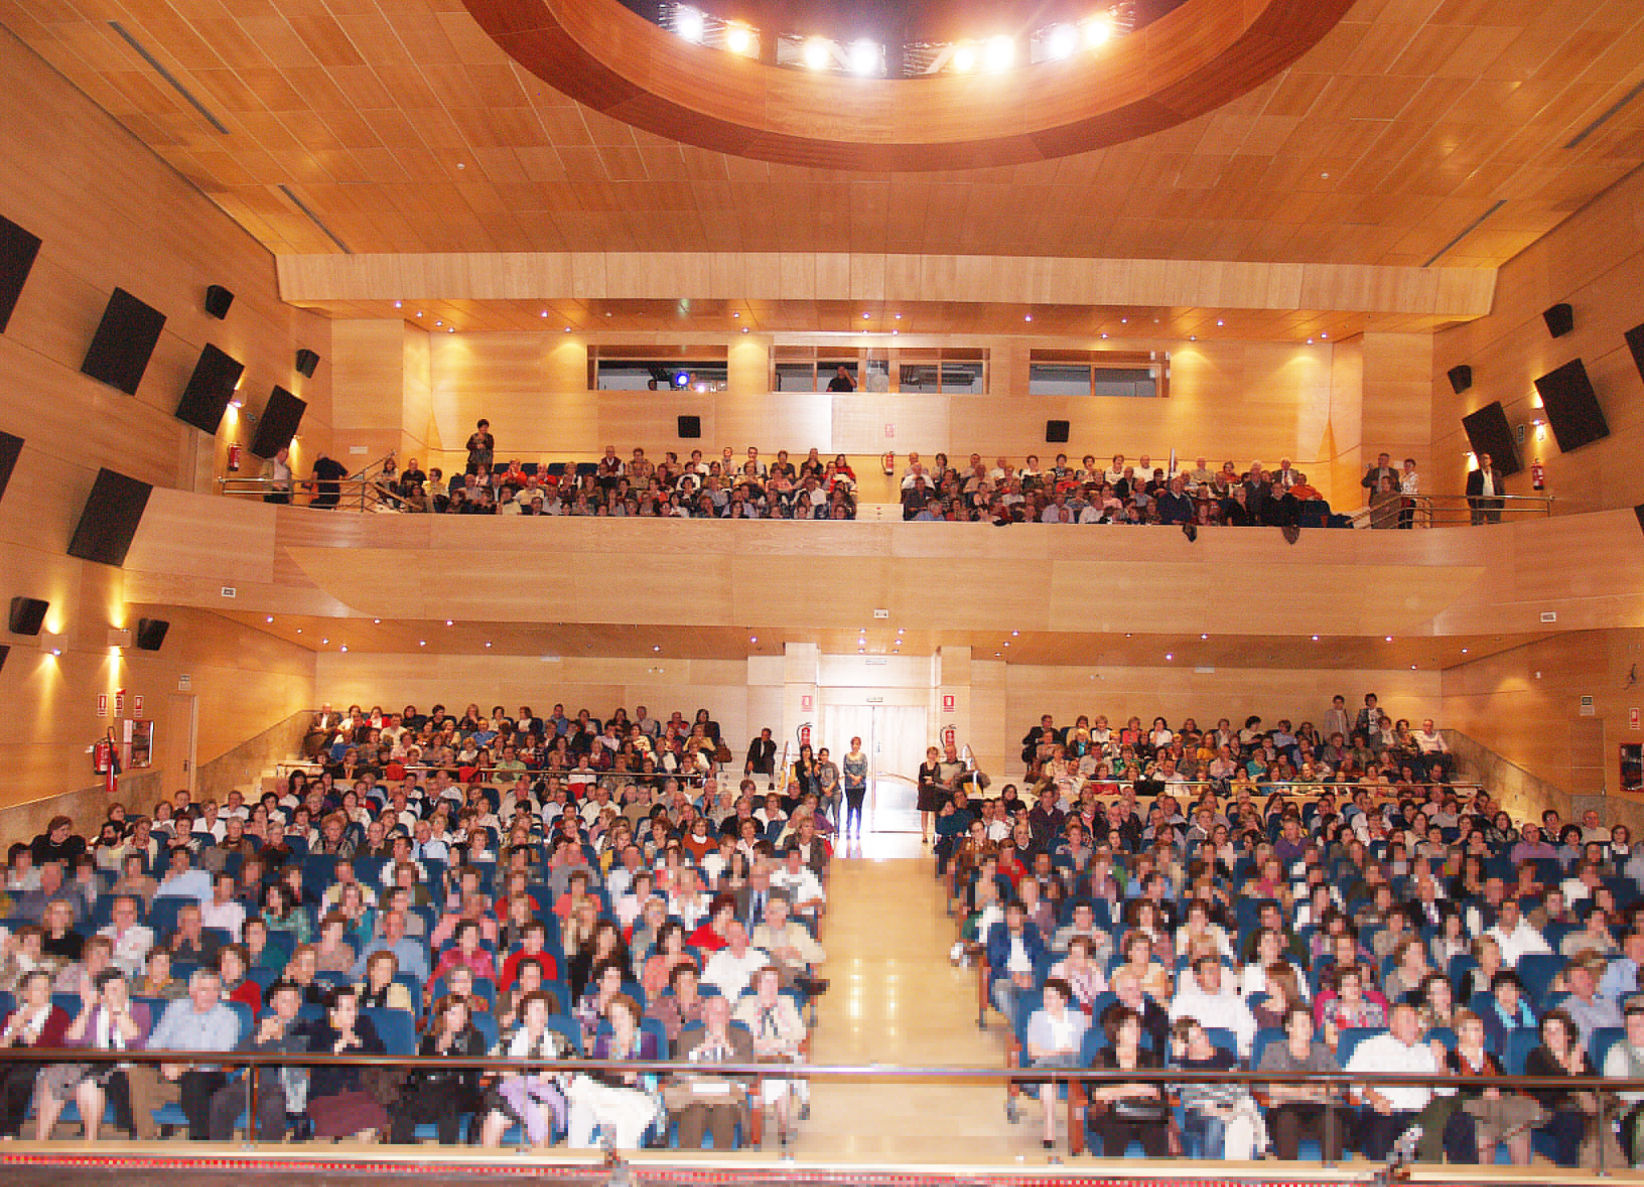 Auditorio Tomás Barreda